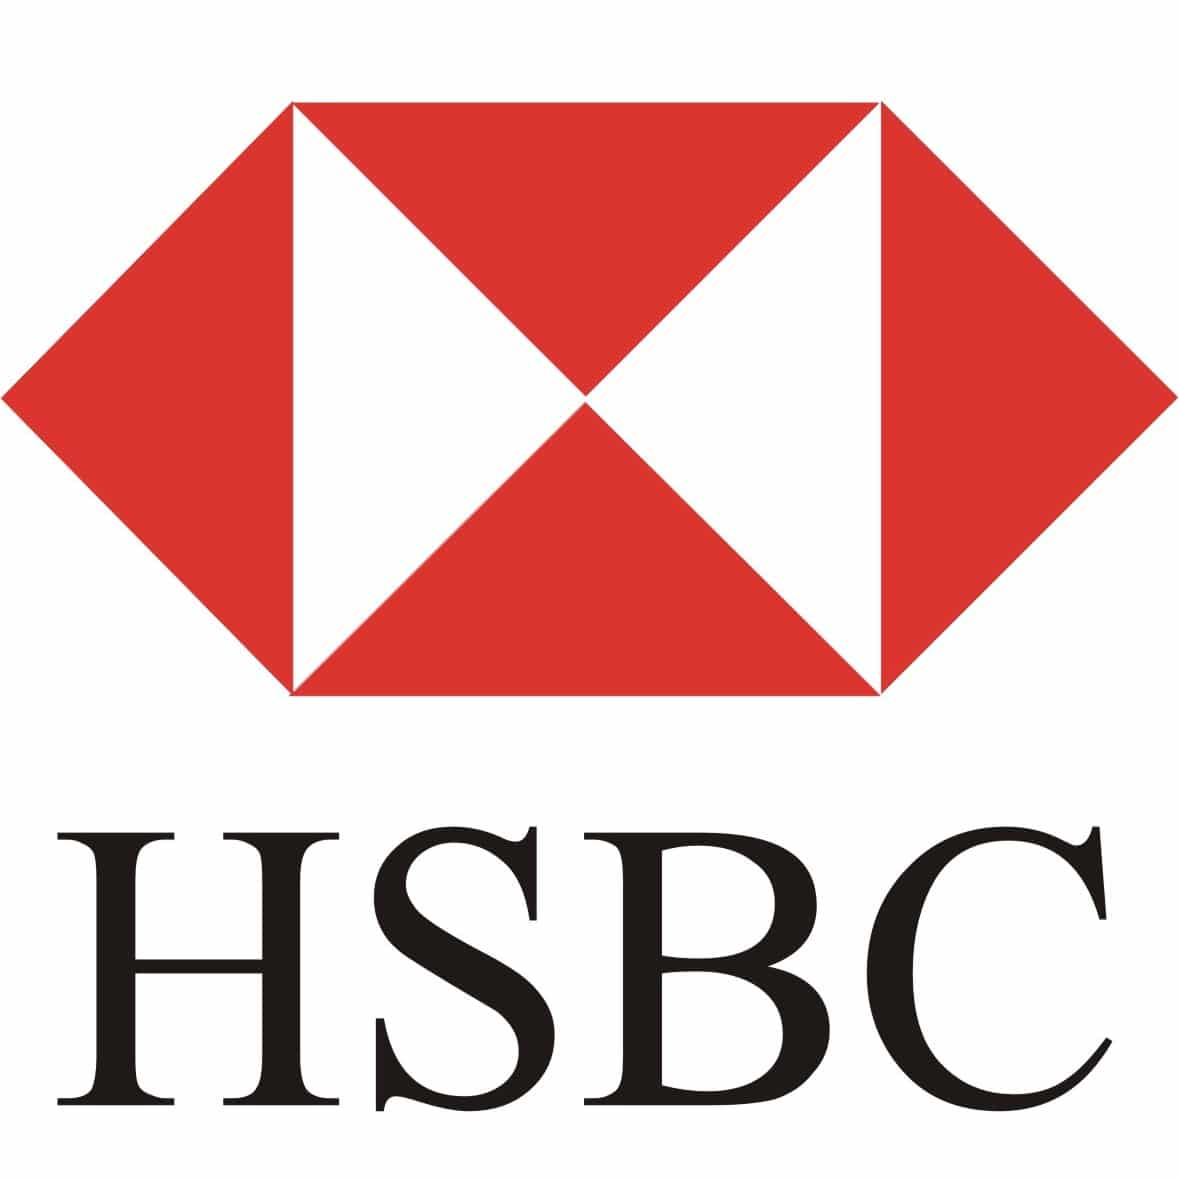 HSBC: Out of the Pan, into the Fire